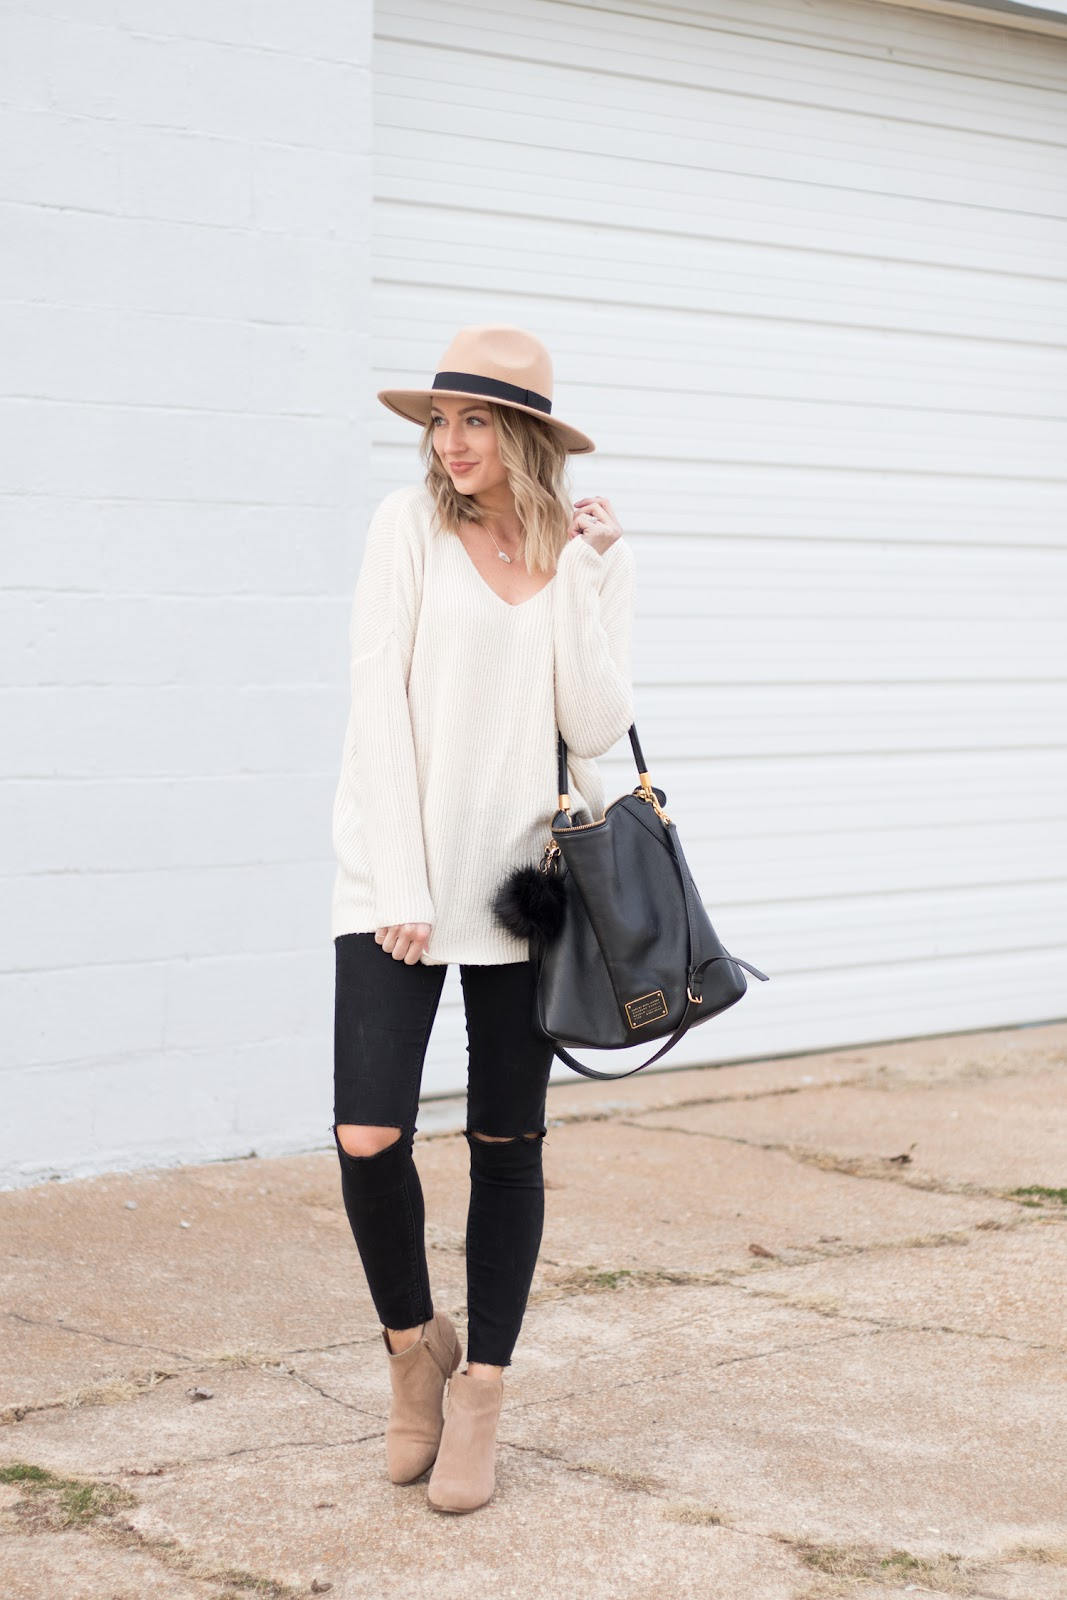 Black and cream fall outfit